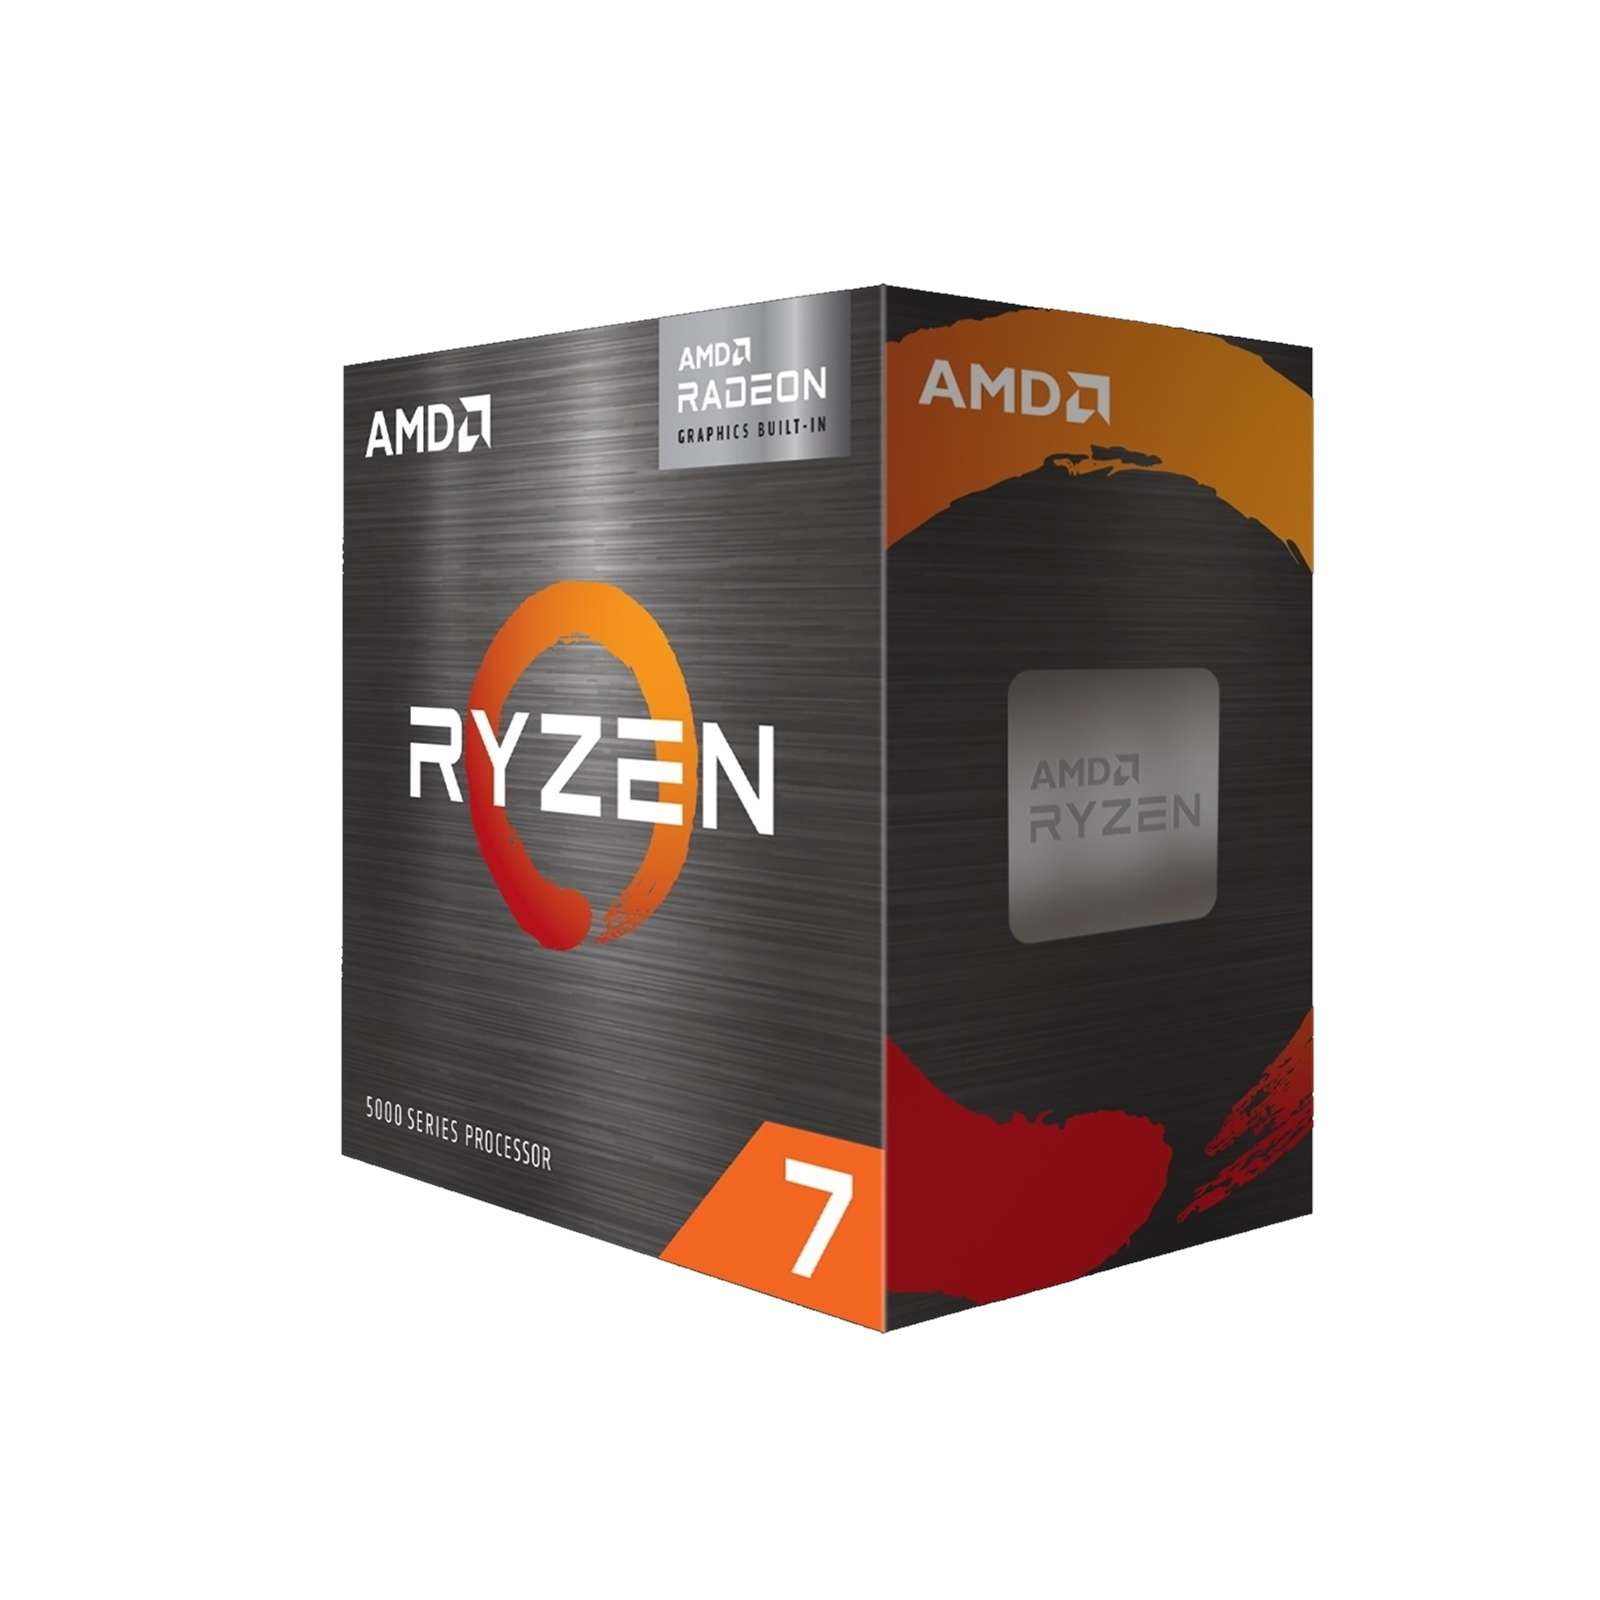 AMD Ryzen 5 5700G with Radeon Graphics and Wraith Stealth Cooler 3.8Ghz (8 cores,16 threads, up to 4.6 GHz) Eight Core AM4 Overclockable Processor